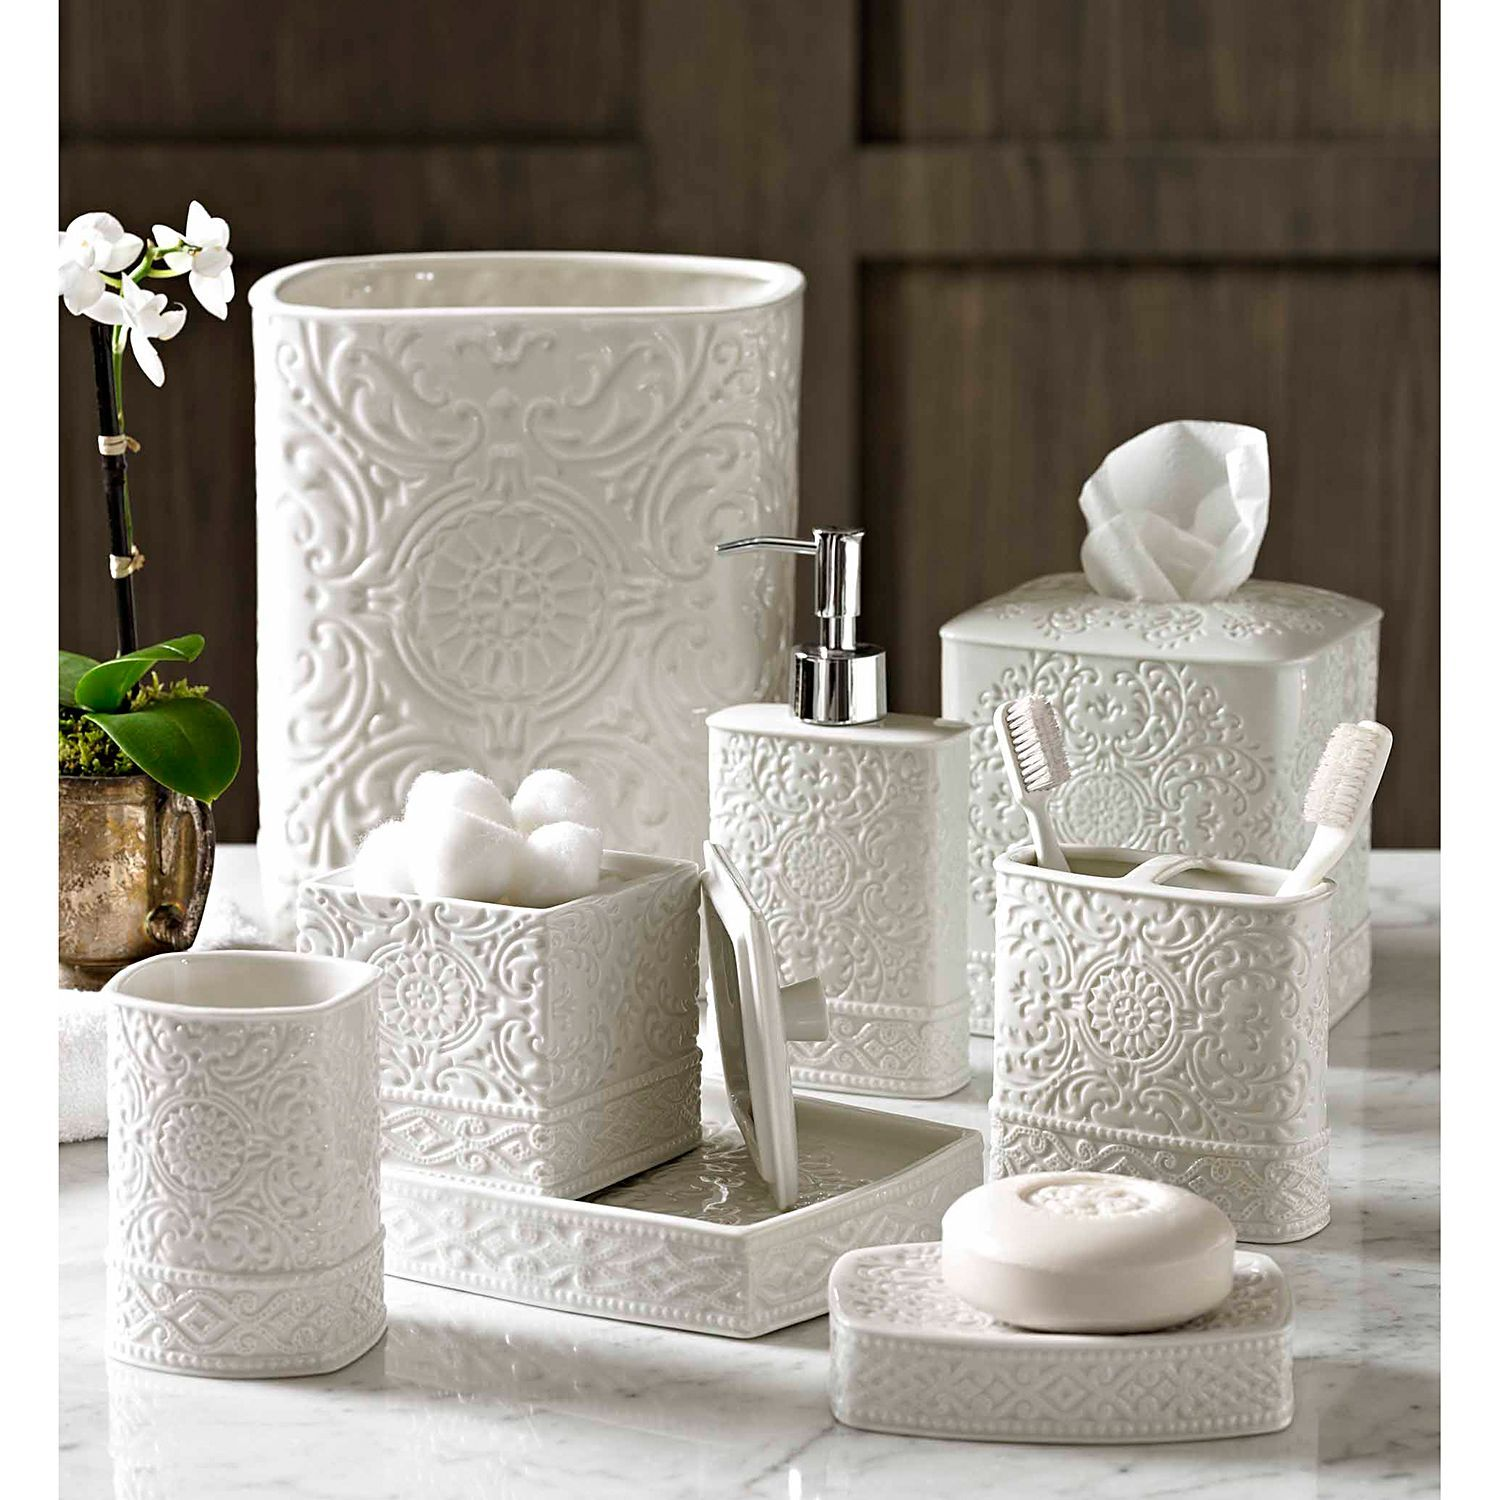 decorative bathroom accessories sets. Trump Home Bedminster Damask Bath Accessory Collection This stylish bath  accessory collection will provide an elegant